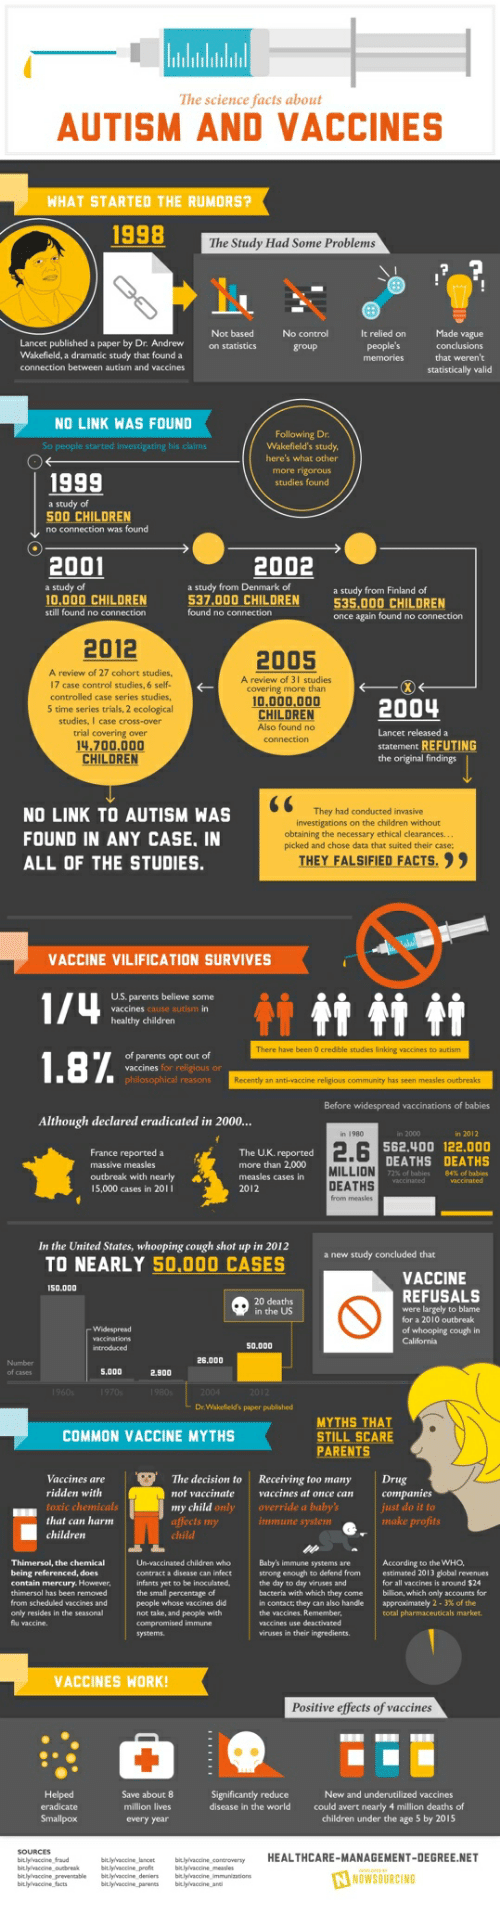 Children, Facts, and Parents: The science facts about  AUTISM AND VACCINES  WHAT STARTED THE RUMORS?  The Study Had Some Problems  Not based  Made vague  et  Wakefield, a dramatic study that found a  connection between autism and vaccines  statistically valid  NO LINK WAS FOUND  Dr  So people started investigating hi  here's what other  1999  studies found  500 CHILDREN  no connection was found  2001  2002  of  of  a study from Finland of  535,000 CHILDREN  537.000 CHILDREN  10,000 CHILDREN  still found no connection  no  once again found no c  2012  2005  A review of 27 cohort studies  17 case control studies, 6 self-  controlled case series studies  5 time series trials, 2 ecological  A review of 3l studies  covering more than  10,000,000  CHILDREN  Also found no  2004  case cross-over  trial covering over  14.700,000  CHILDREN  statement REFUTING  the original findings  NO LINK TO AUTISM WAS  FOUND IN ANY CASE. IN  ALL OF THE STUDIES.  They had conducted invasive  investigations on the children without  obtaining the necessary ethical clearances.  picked and chose data that suited their case:  THEY FALSIFİED FACTS. , ,  VACCINE VILIFICATION SURVIVES  some  vaccines cause autism in  There have been 0 credible studies linking vaccines to autism  of parents opt out of  Although declared eradicated in 2000...  in 1980  The UK. reported  more than 2,000  562.400 122.000  DEATHS DEATHS  massive measles  MILLION  72% of babies  84% of babies  DEATHS  from measles  15,000 cases in 20  In the United States, whooping cough shot up in 2012  TO NEARLY 50,000 CASES anew study concluded tha  VACCINE  REFUSALS  S0.000  in the US  of  in  0.000  26.000  S.000  2.900  Dr. Wakefield's paper published  MYTHS THAT  STILL SCARE  PARENTS  COMMON VACCINE MYTHS  Vaccines areThe decision to Receiving too manyDrug  not vaccinate vaccines at once can companies  only override a baby's  that can harm  immune system  make profits  Thimersol, the chemical  being referenced, does  Un-vaccinated children wheo  Baby's immune systems are  strong enough to defend from estimated 2013 global revenues  the day to day viruses and  bacteria with which they comebillion, which only accounts for  in contact: they can also handle | approximately 2-3% of the  yet to be  for all vaccines is around $24  of  thimersol has been removed  from scheduled vaccines and  only resides in the seasonal  the small percentage  people whose vaccines did  not take, and people with  viruses in their ingredients.  VACCINES WORK!  Positive effects of vaccines  Save about 8  million lives  every year  New and underutilized vaccines  ld avert nearly 4 million deaths of  children under the age 5 by 2015  disease in the world  HEALTHCARE-MANAGEMENT-DEGREE.NET  bitlylvaccine profitbilvaccine measles  NOWSOURCING  bitlylvaccine prevernable bitlylvaccine deniersbitlylvaccine immunizations